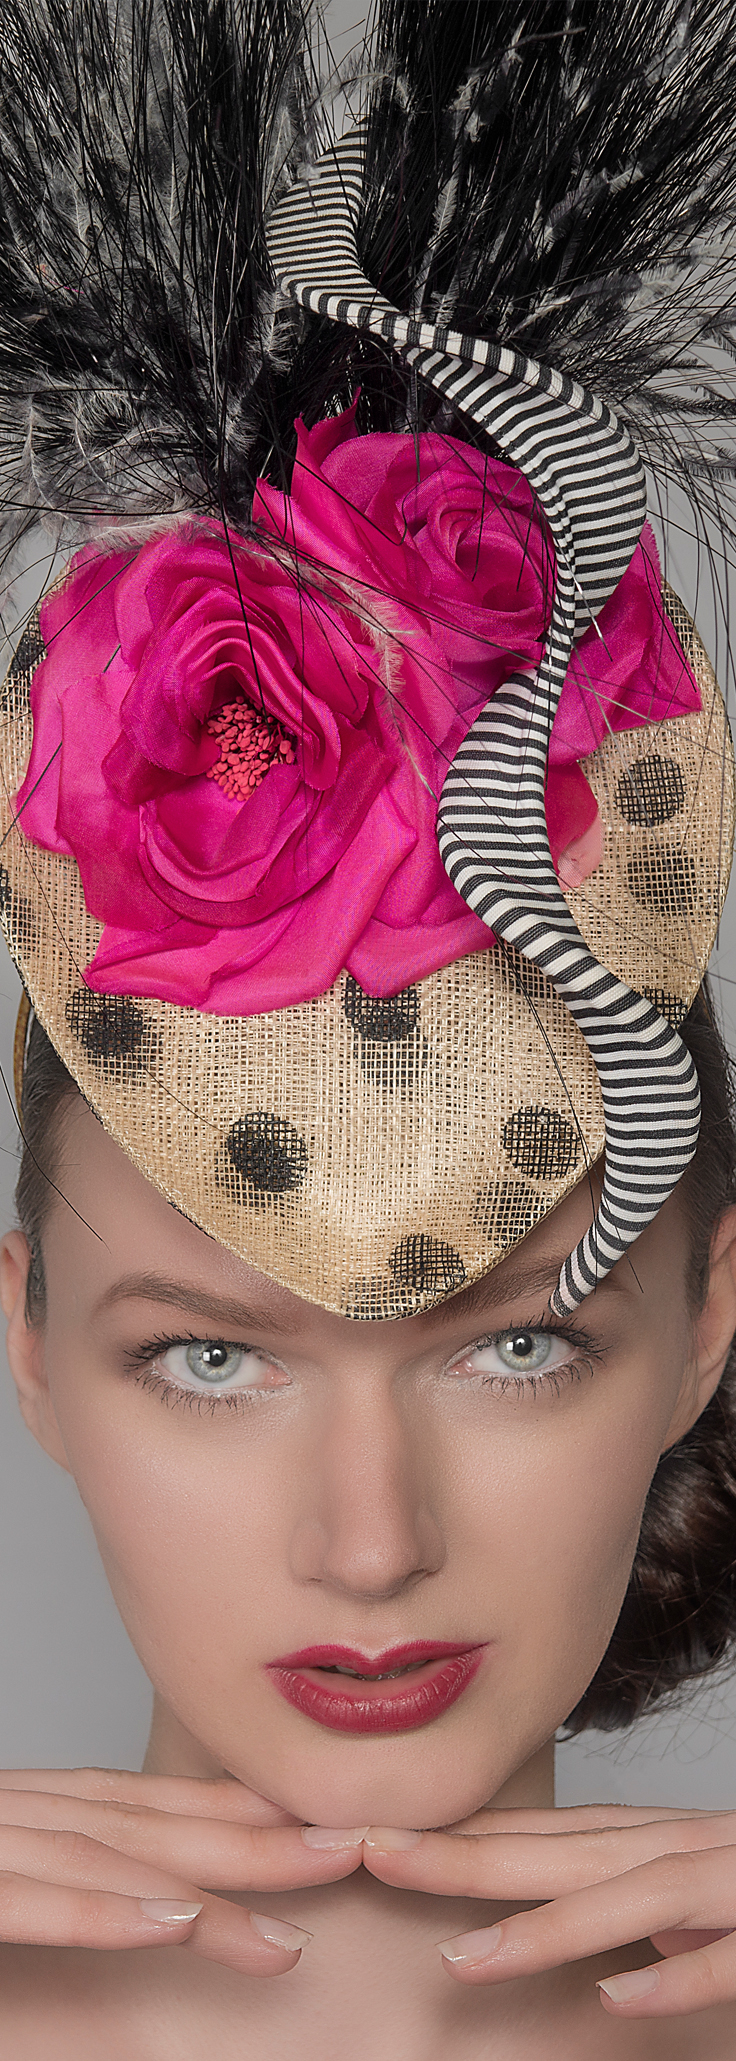 Ladies Designer Hat Hire or Bespoke Hats made to order. Book online for Royal Ascot Races. The only Hat Hire at Royal Ascot Races. Hats for other events, mother of the bride, available on Mail Order. Ascot Hats from Philip Treacy, Jane Taylor, Bundle Maclaren, Rosie Olivia, Nigel Rayment and other leading Milliners. #millinery #couture #fashionista #hats